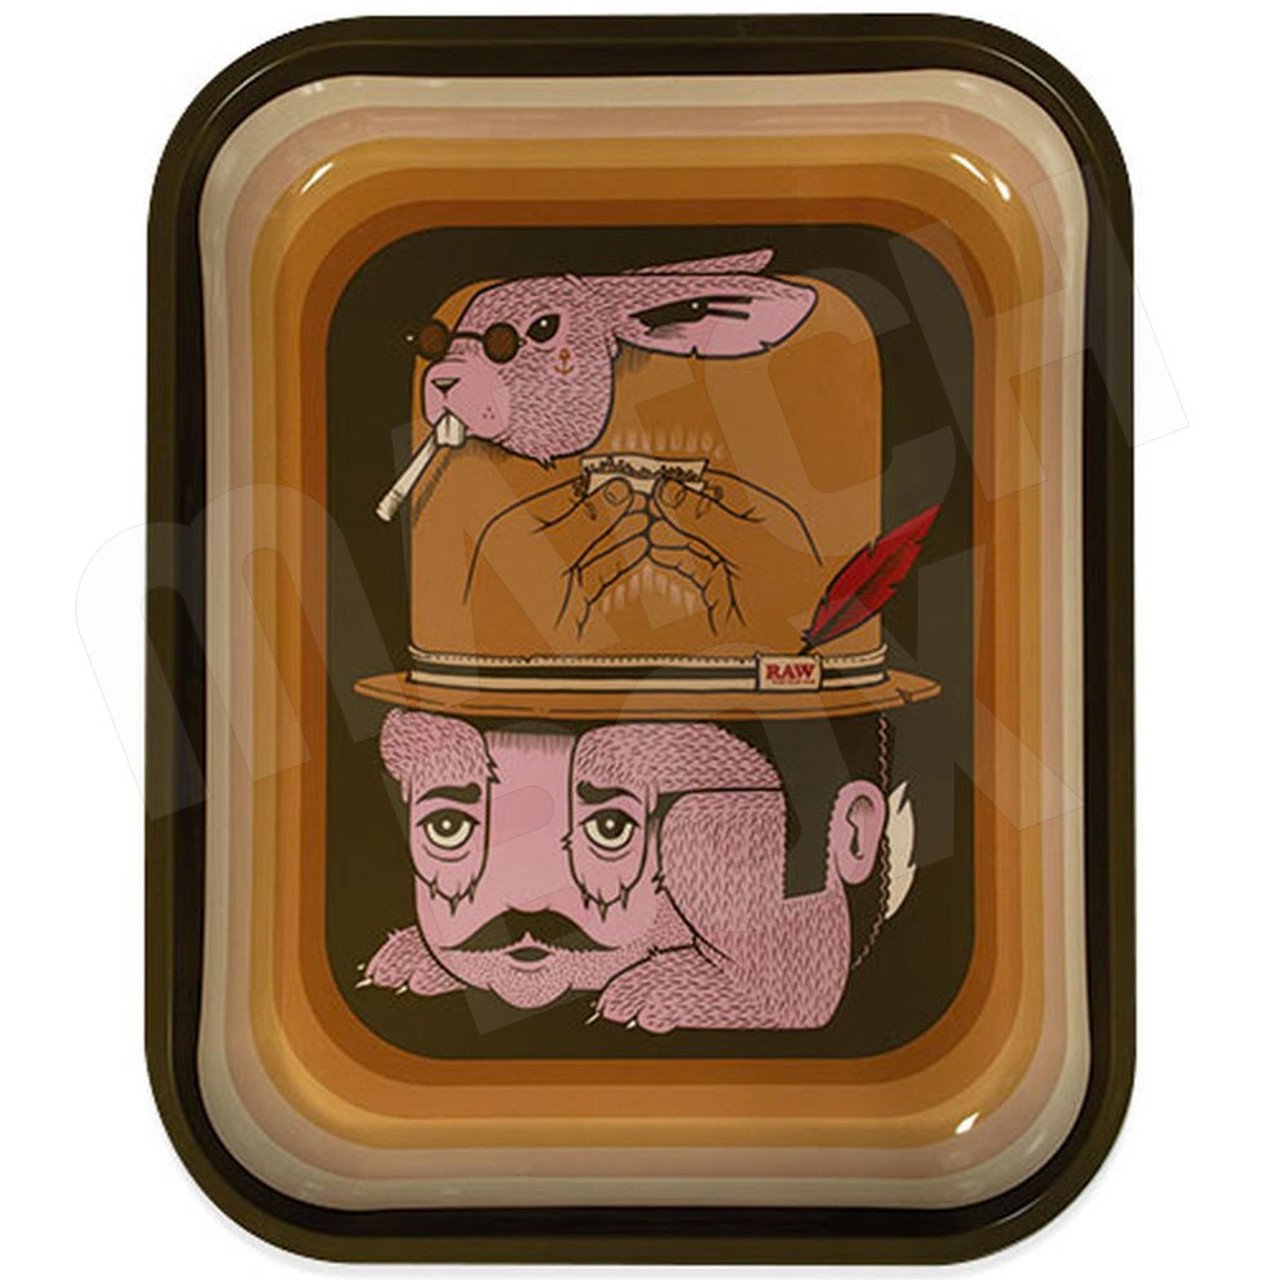 RAW Artist Series Rolling Tray by Jeremy Fish